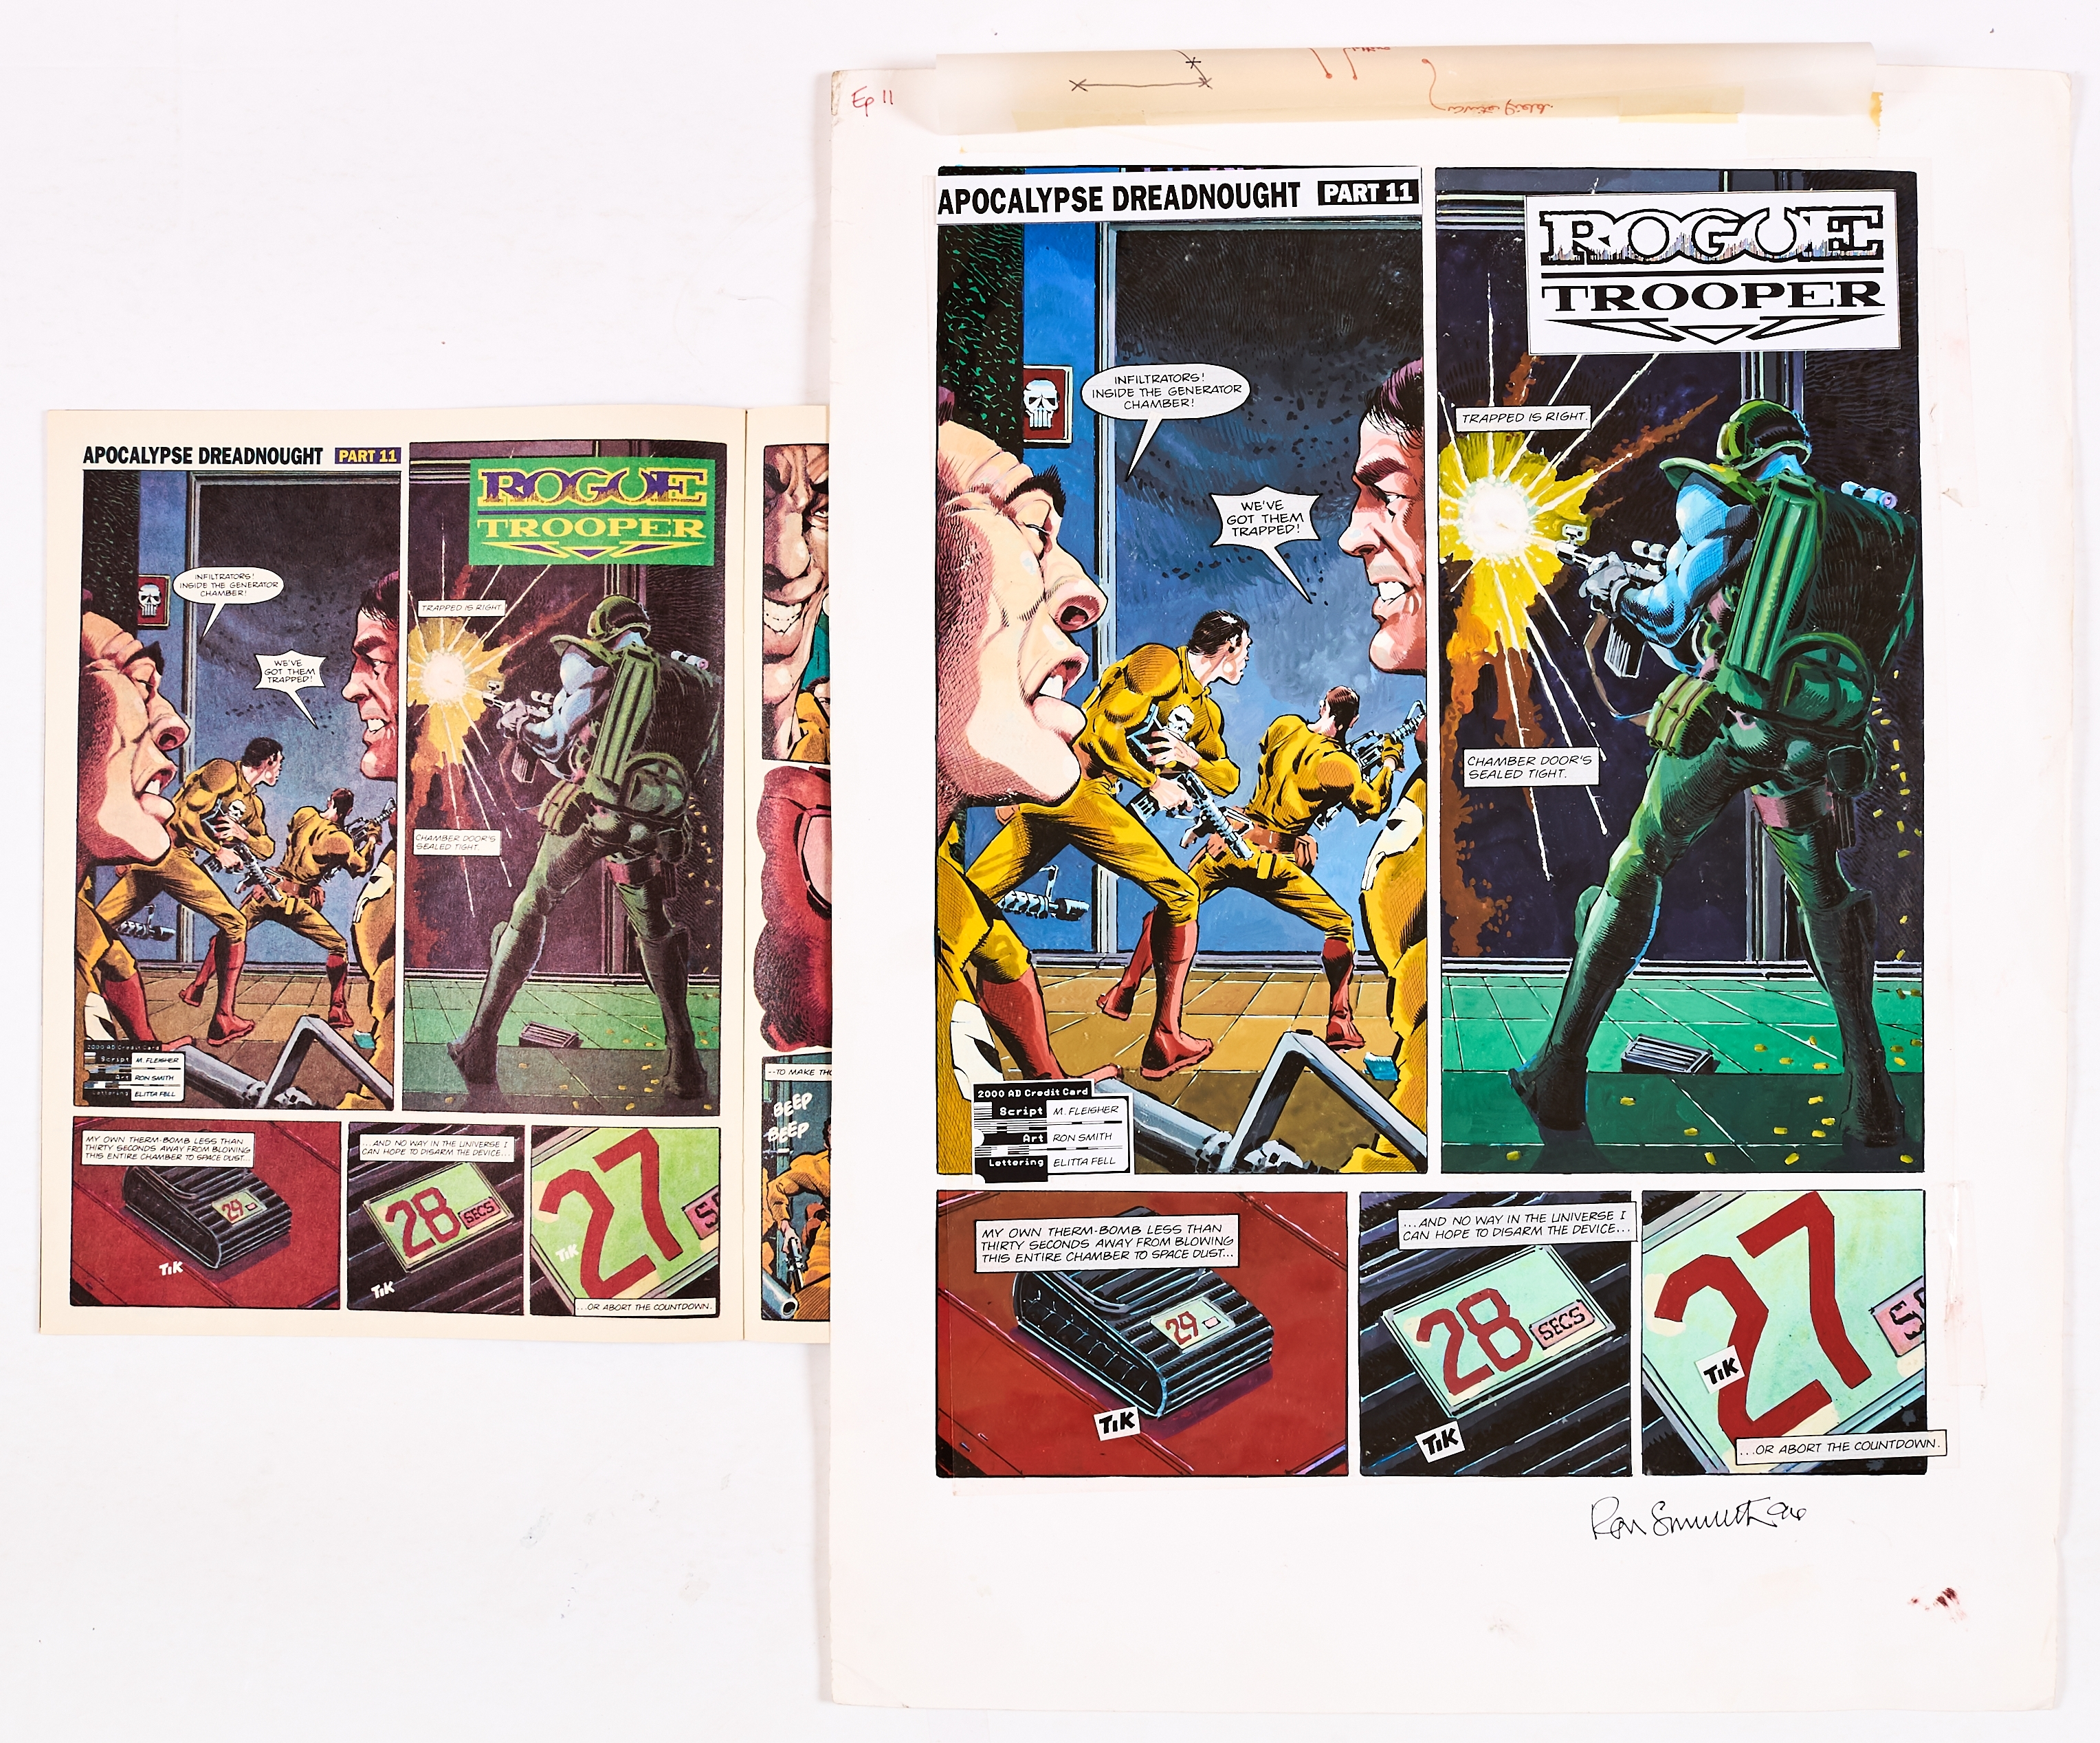 Lot 260 - Rogue Trooper original artwork drawn, painted and signed by Ron Smith from 2000AD prog 790, pg 20, 4